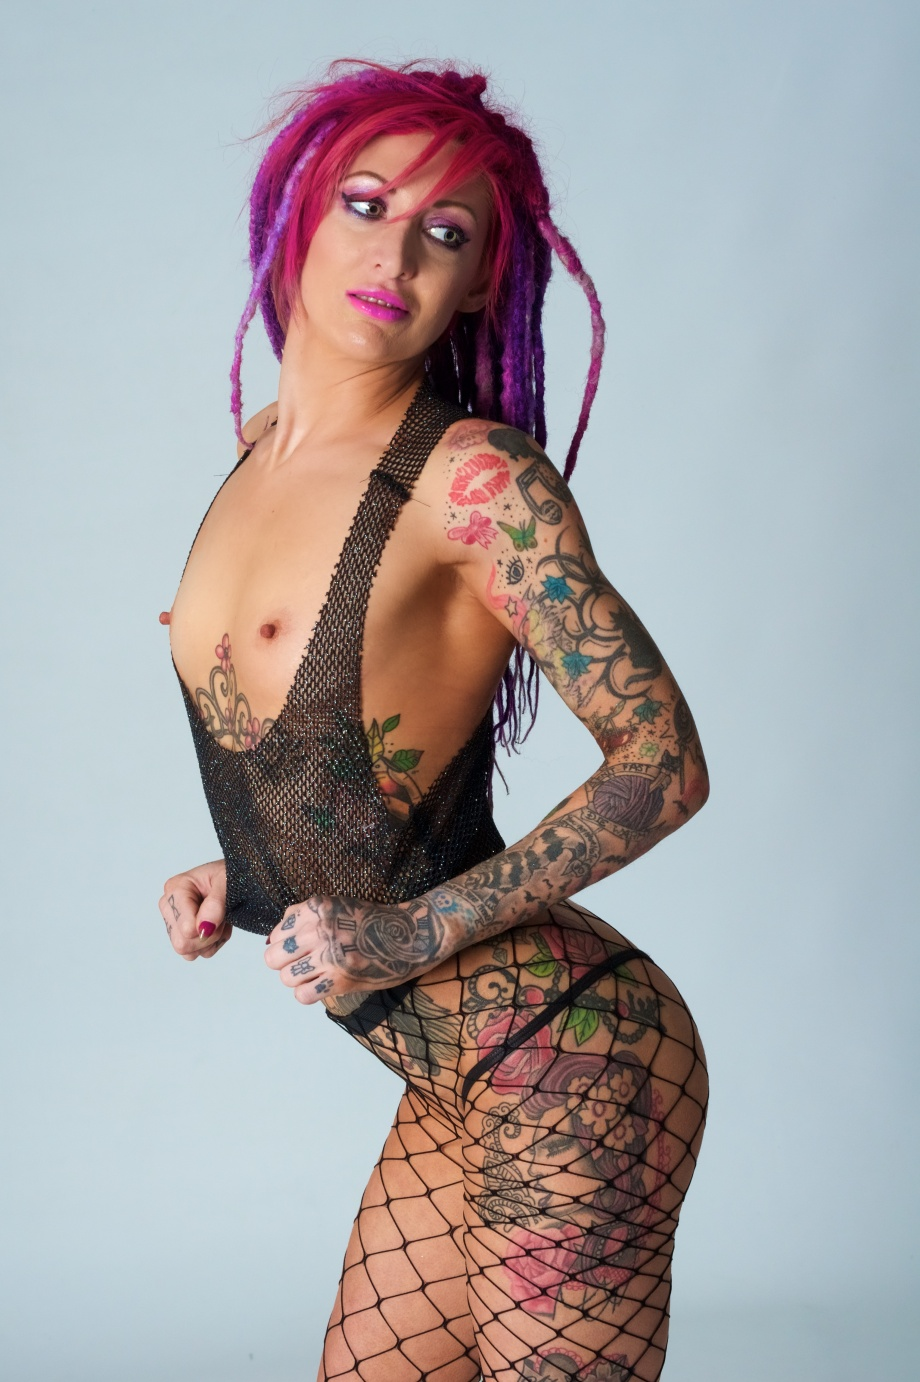 glamour, studio, dreads, tattoos, sexy, topless